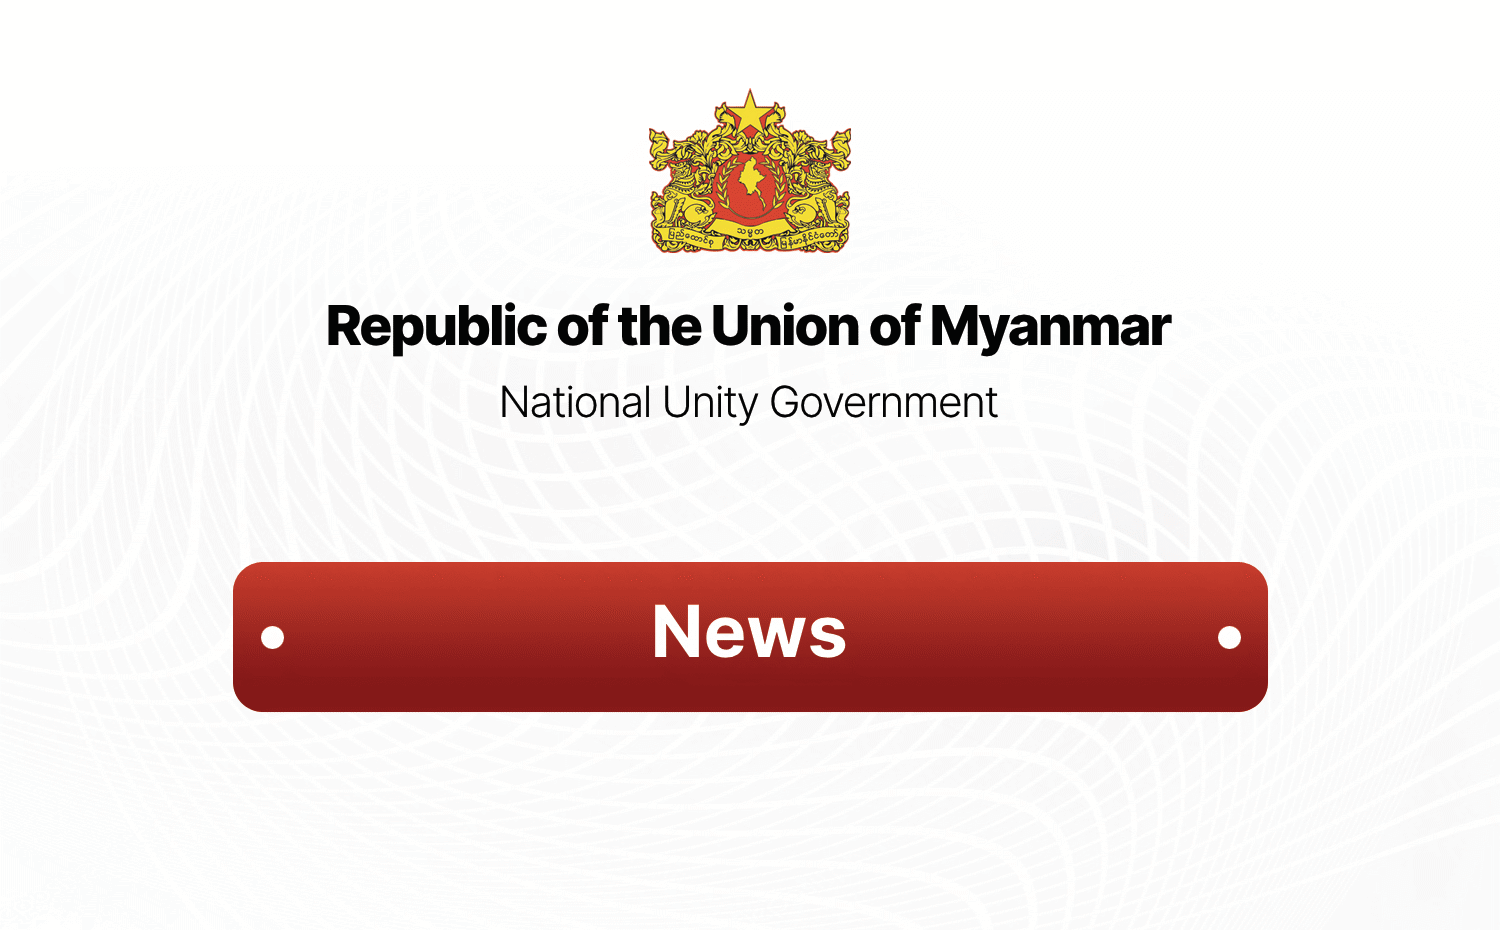 Vice President Duwa Lashi La gave a speech at the first meeting between the National Unity Government (NUG) and the Committee Representing Pyidaungsu Hluttaw (CRPH)